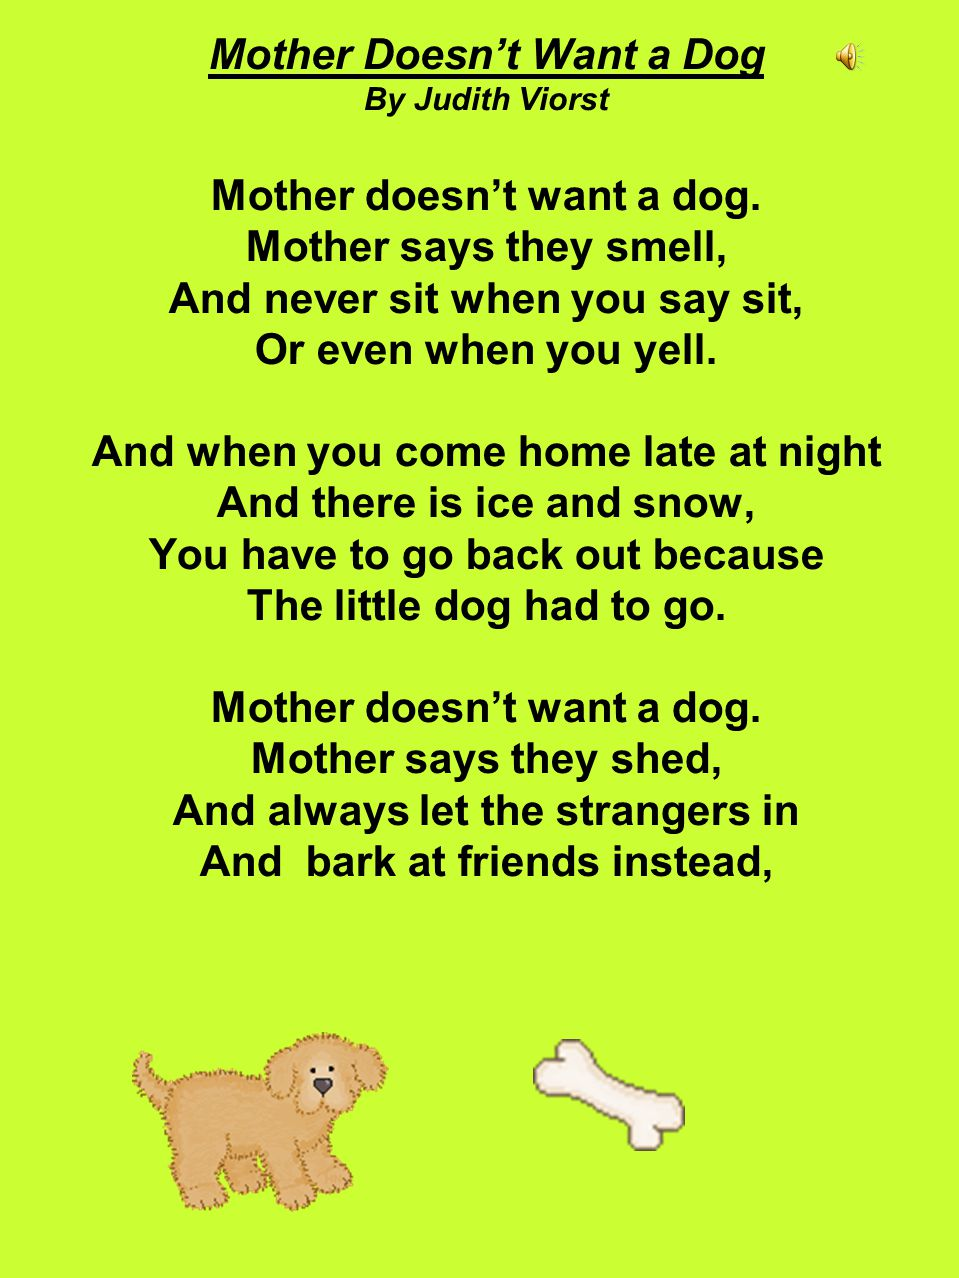 Mother Doesn't Want a Dog By Judith Viorst Mother doesn't want a dog